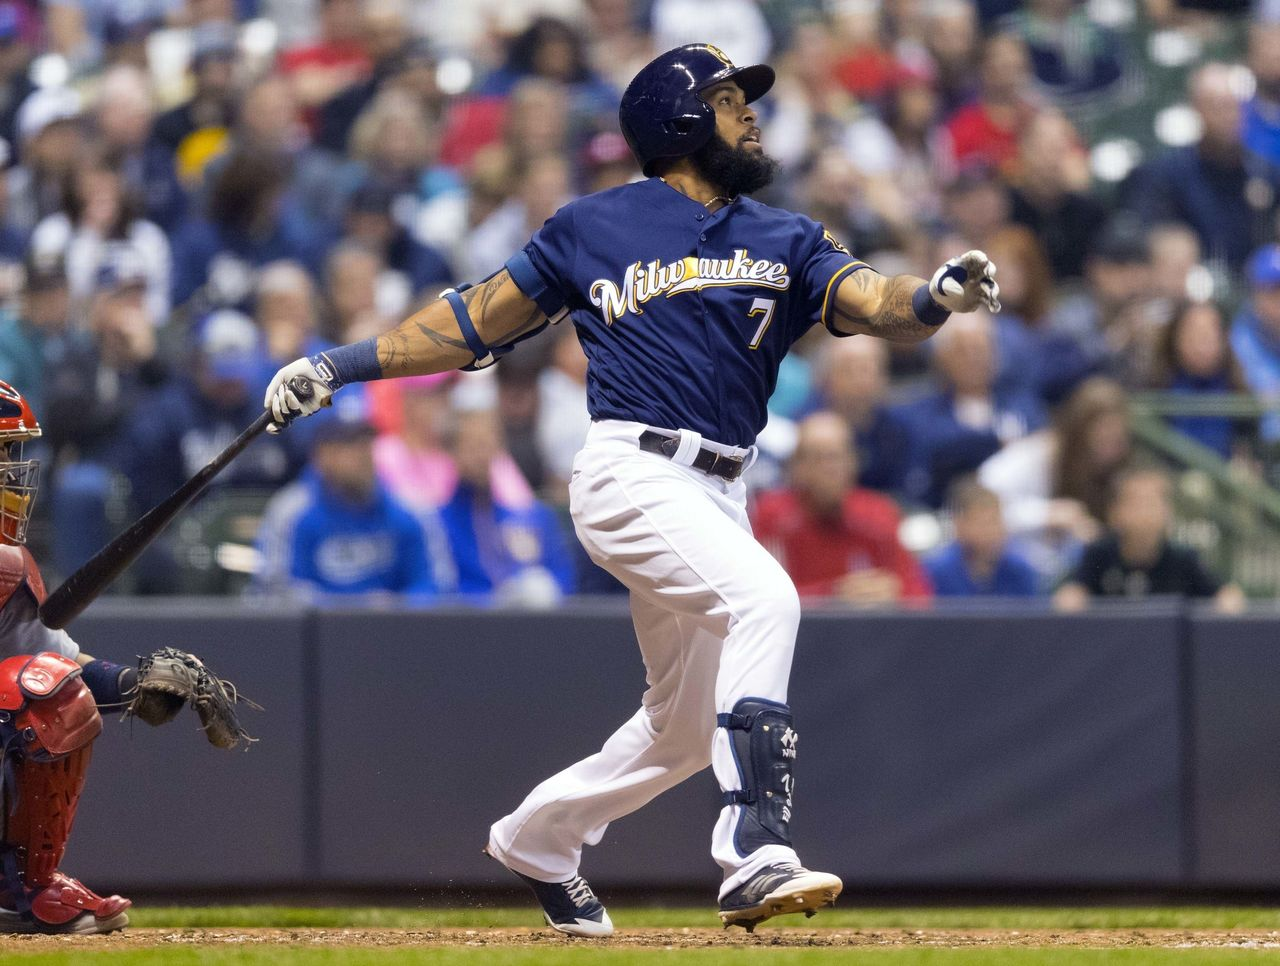 Cropped 2017 04 21t015824z 1670647138 nocid rtrmadp 3 mlb st louis cardinals at milwaukee brewers